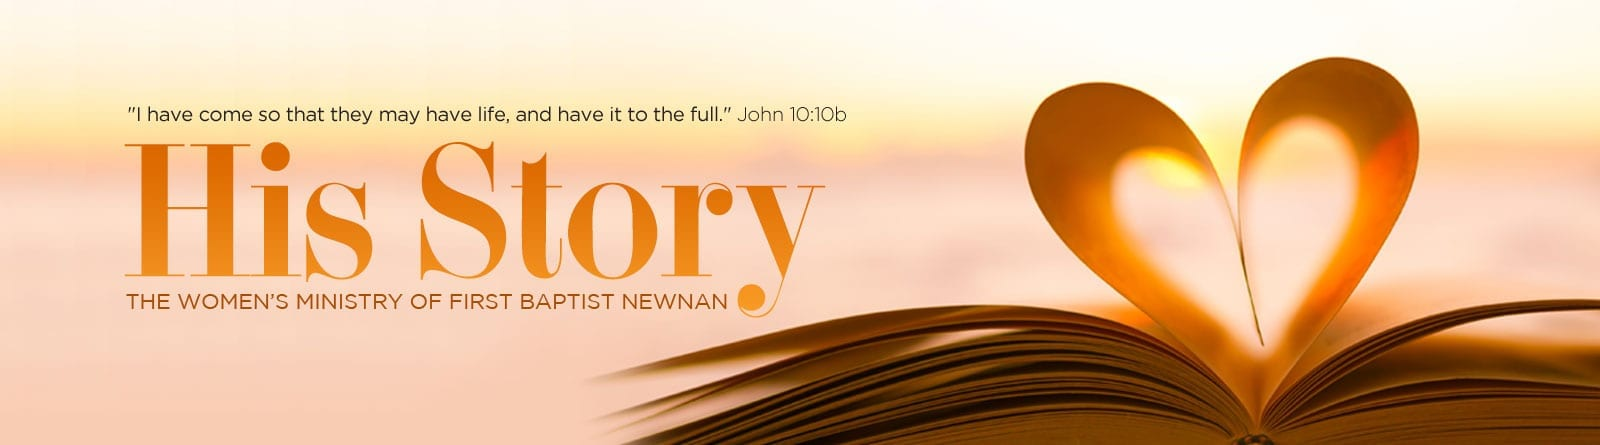 His-Story-1600×445